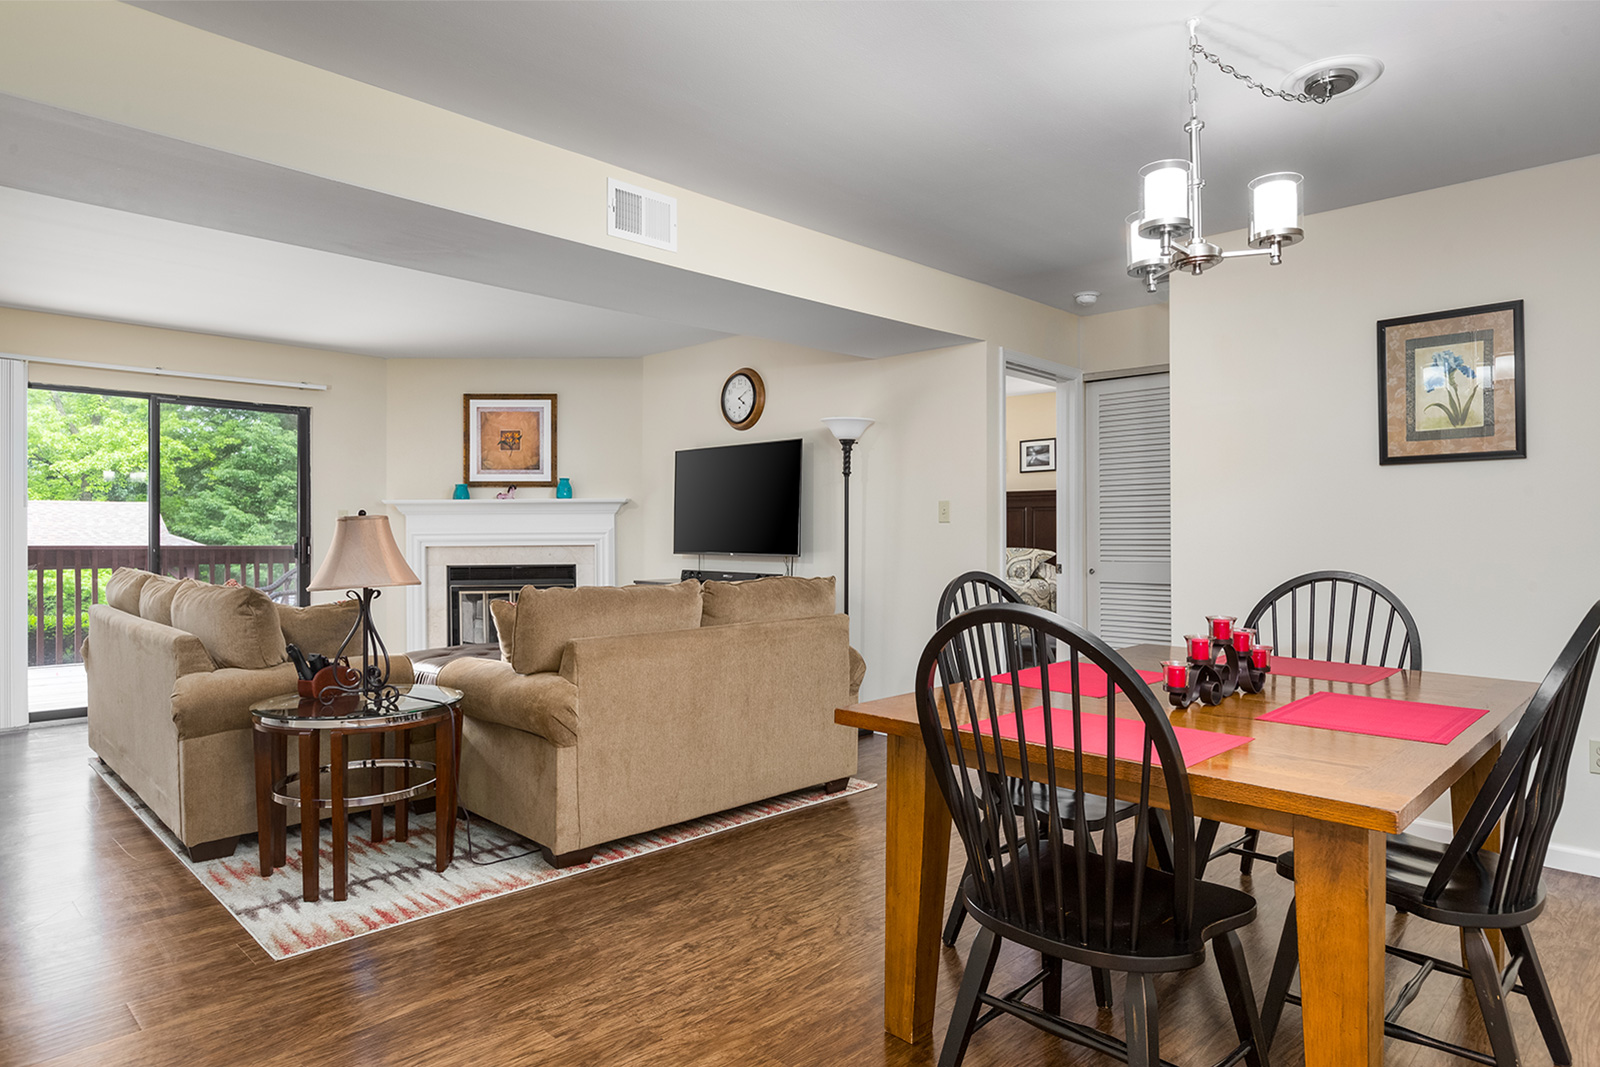 A dining room that leads into a living room at Chesterfield Village Apartments